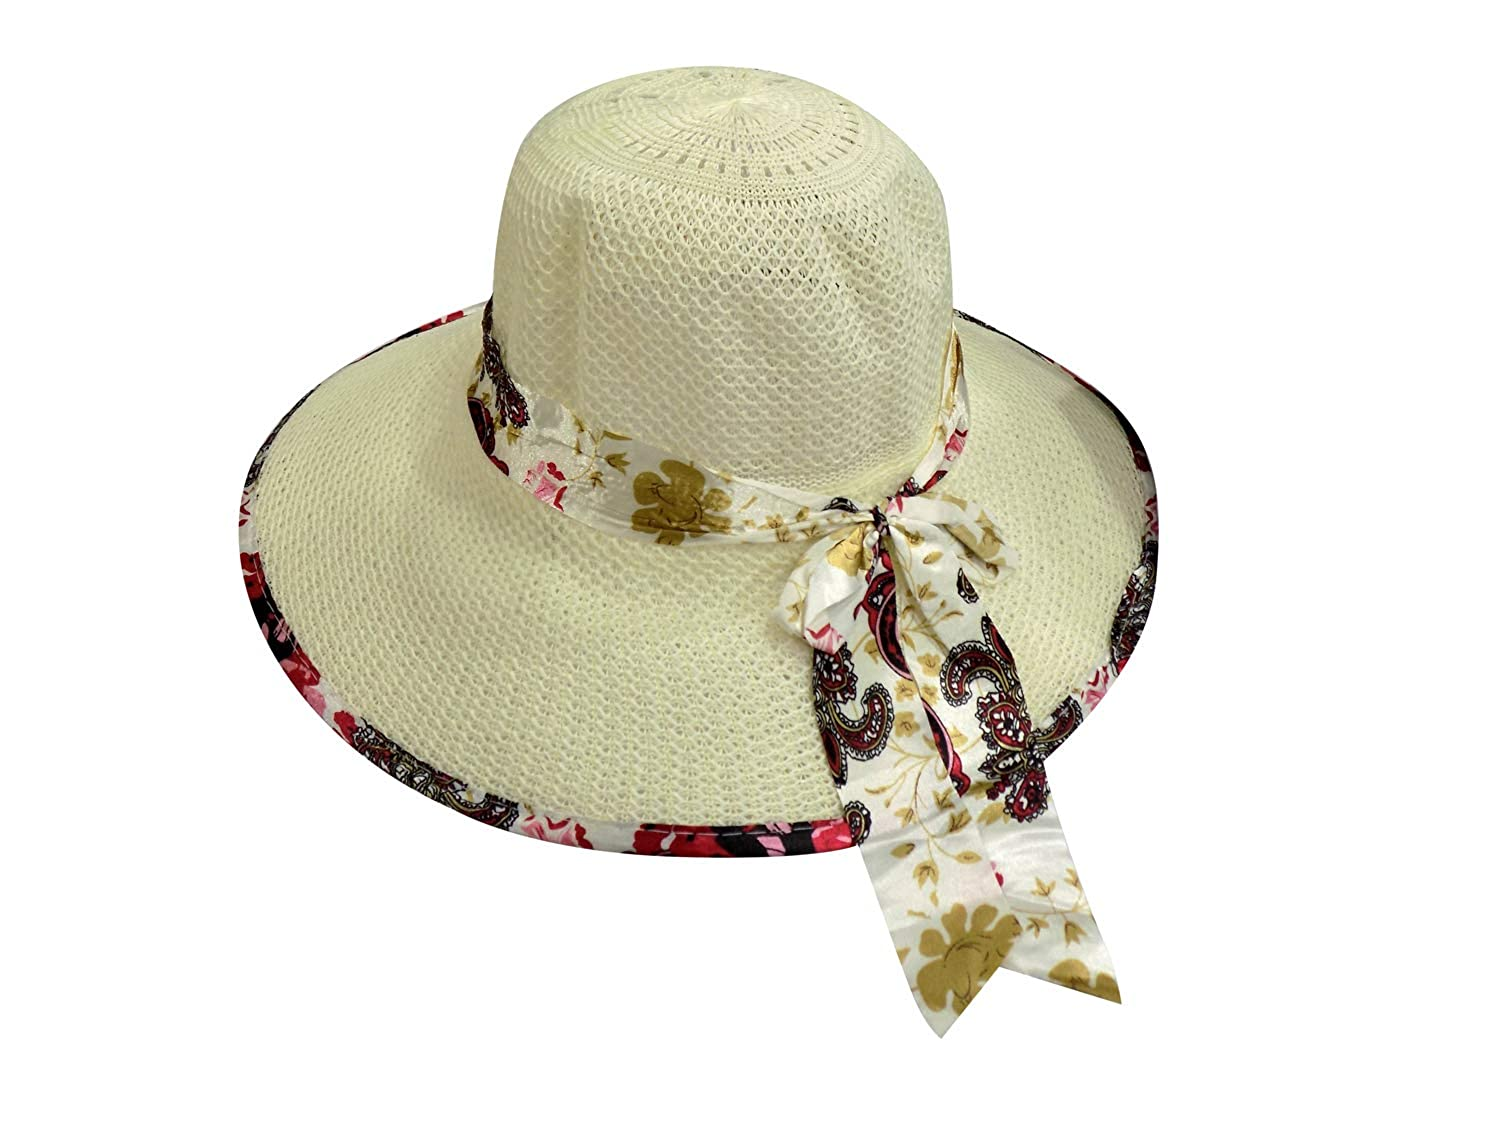 Confidence Latest Fashion Beach Hat for Women Summer Hats for Girls 30 Gram  Pack of 1  Amazon.in  Clothing   Accessories aa695c48e1c